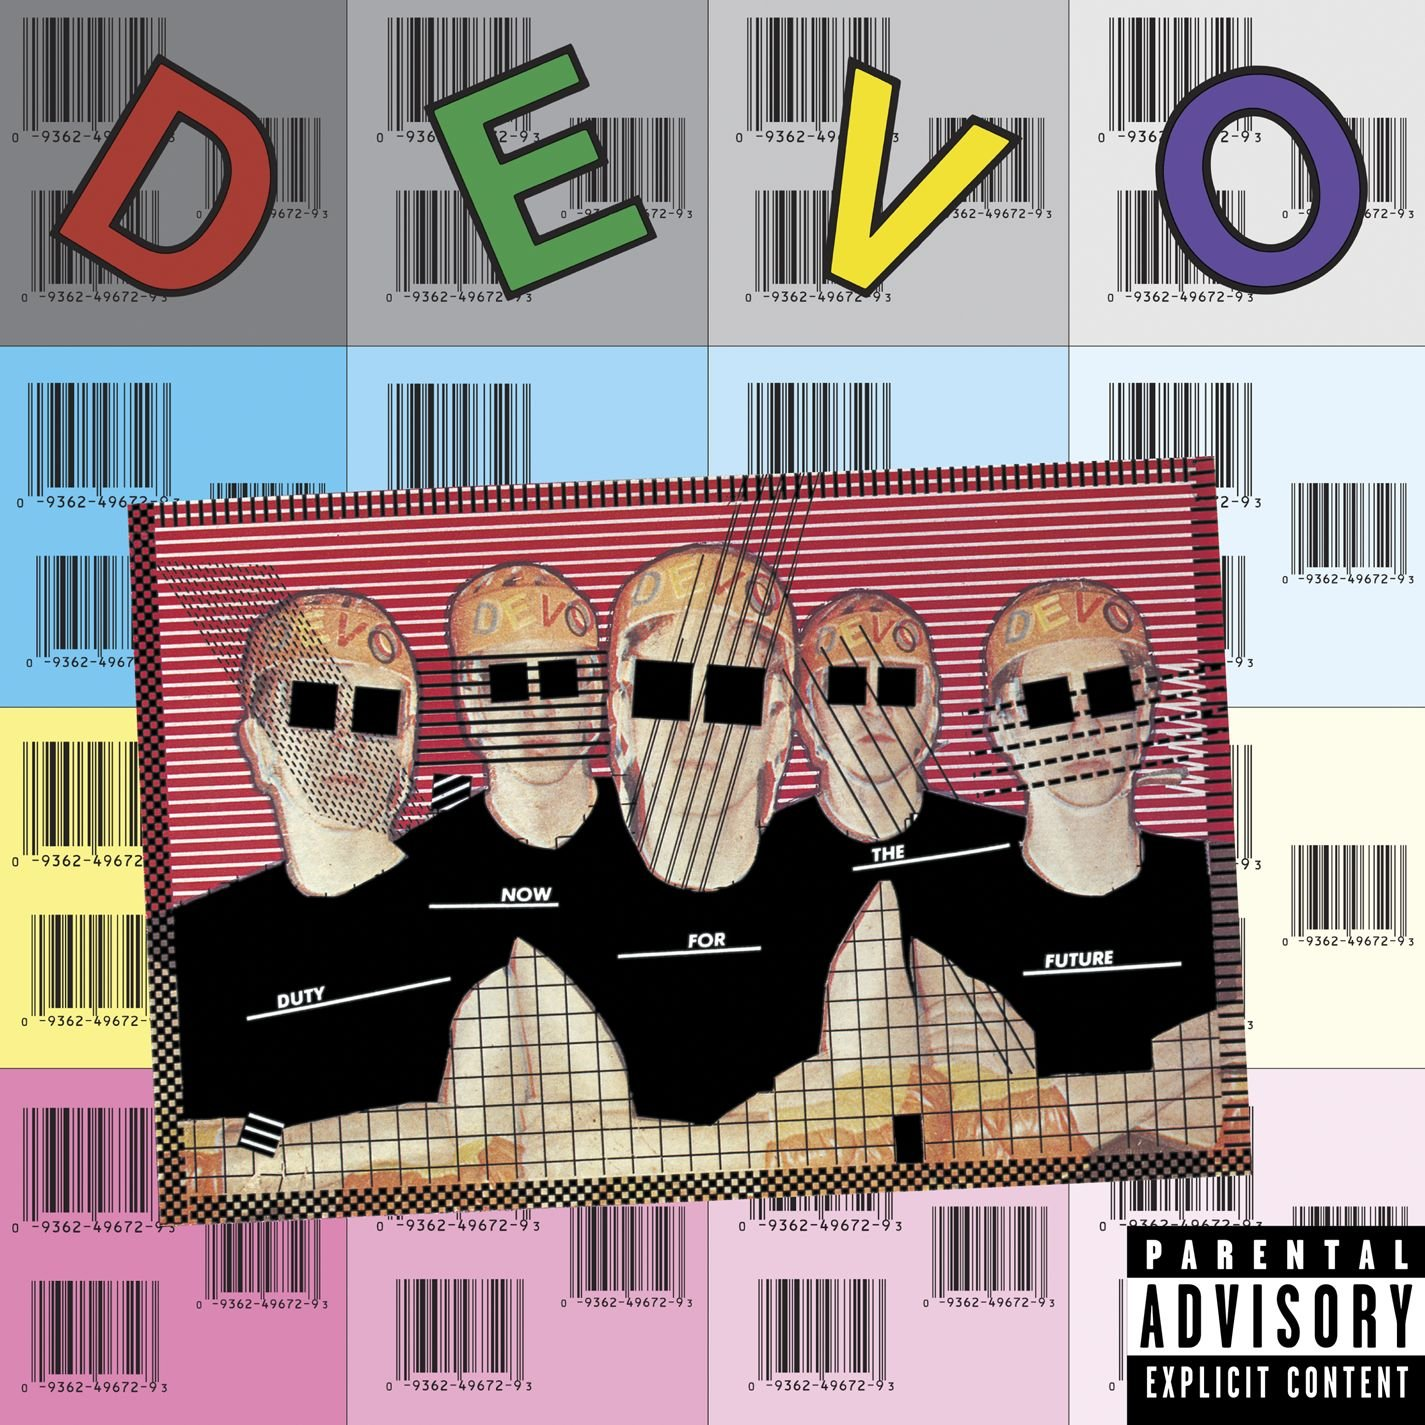 Devo – Duty Now For the Future The 100 Greatest Albums of All Time